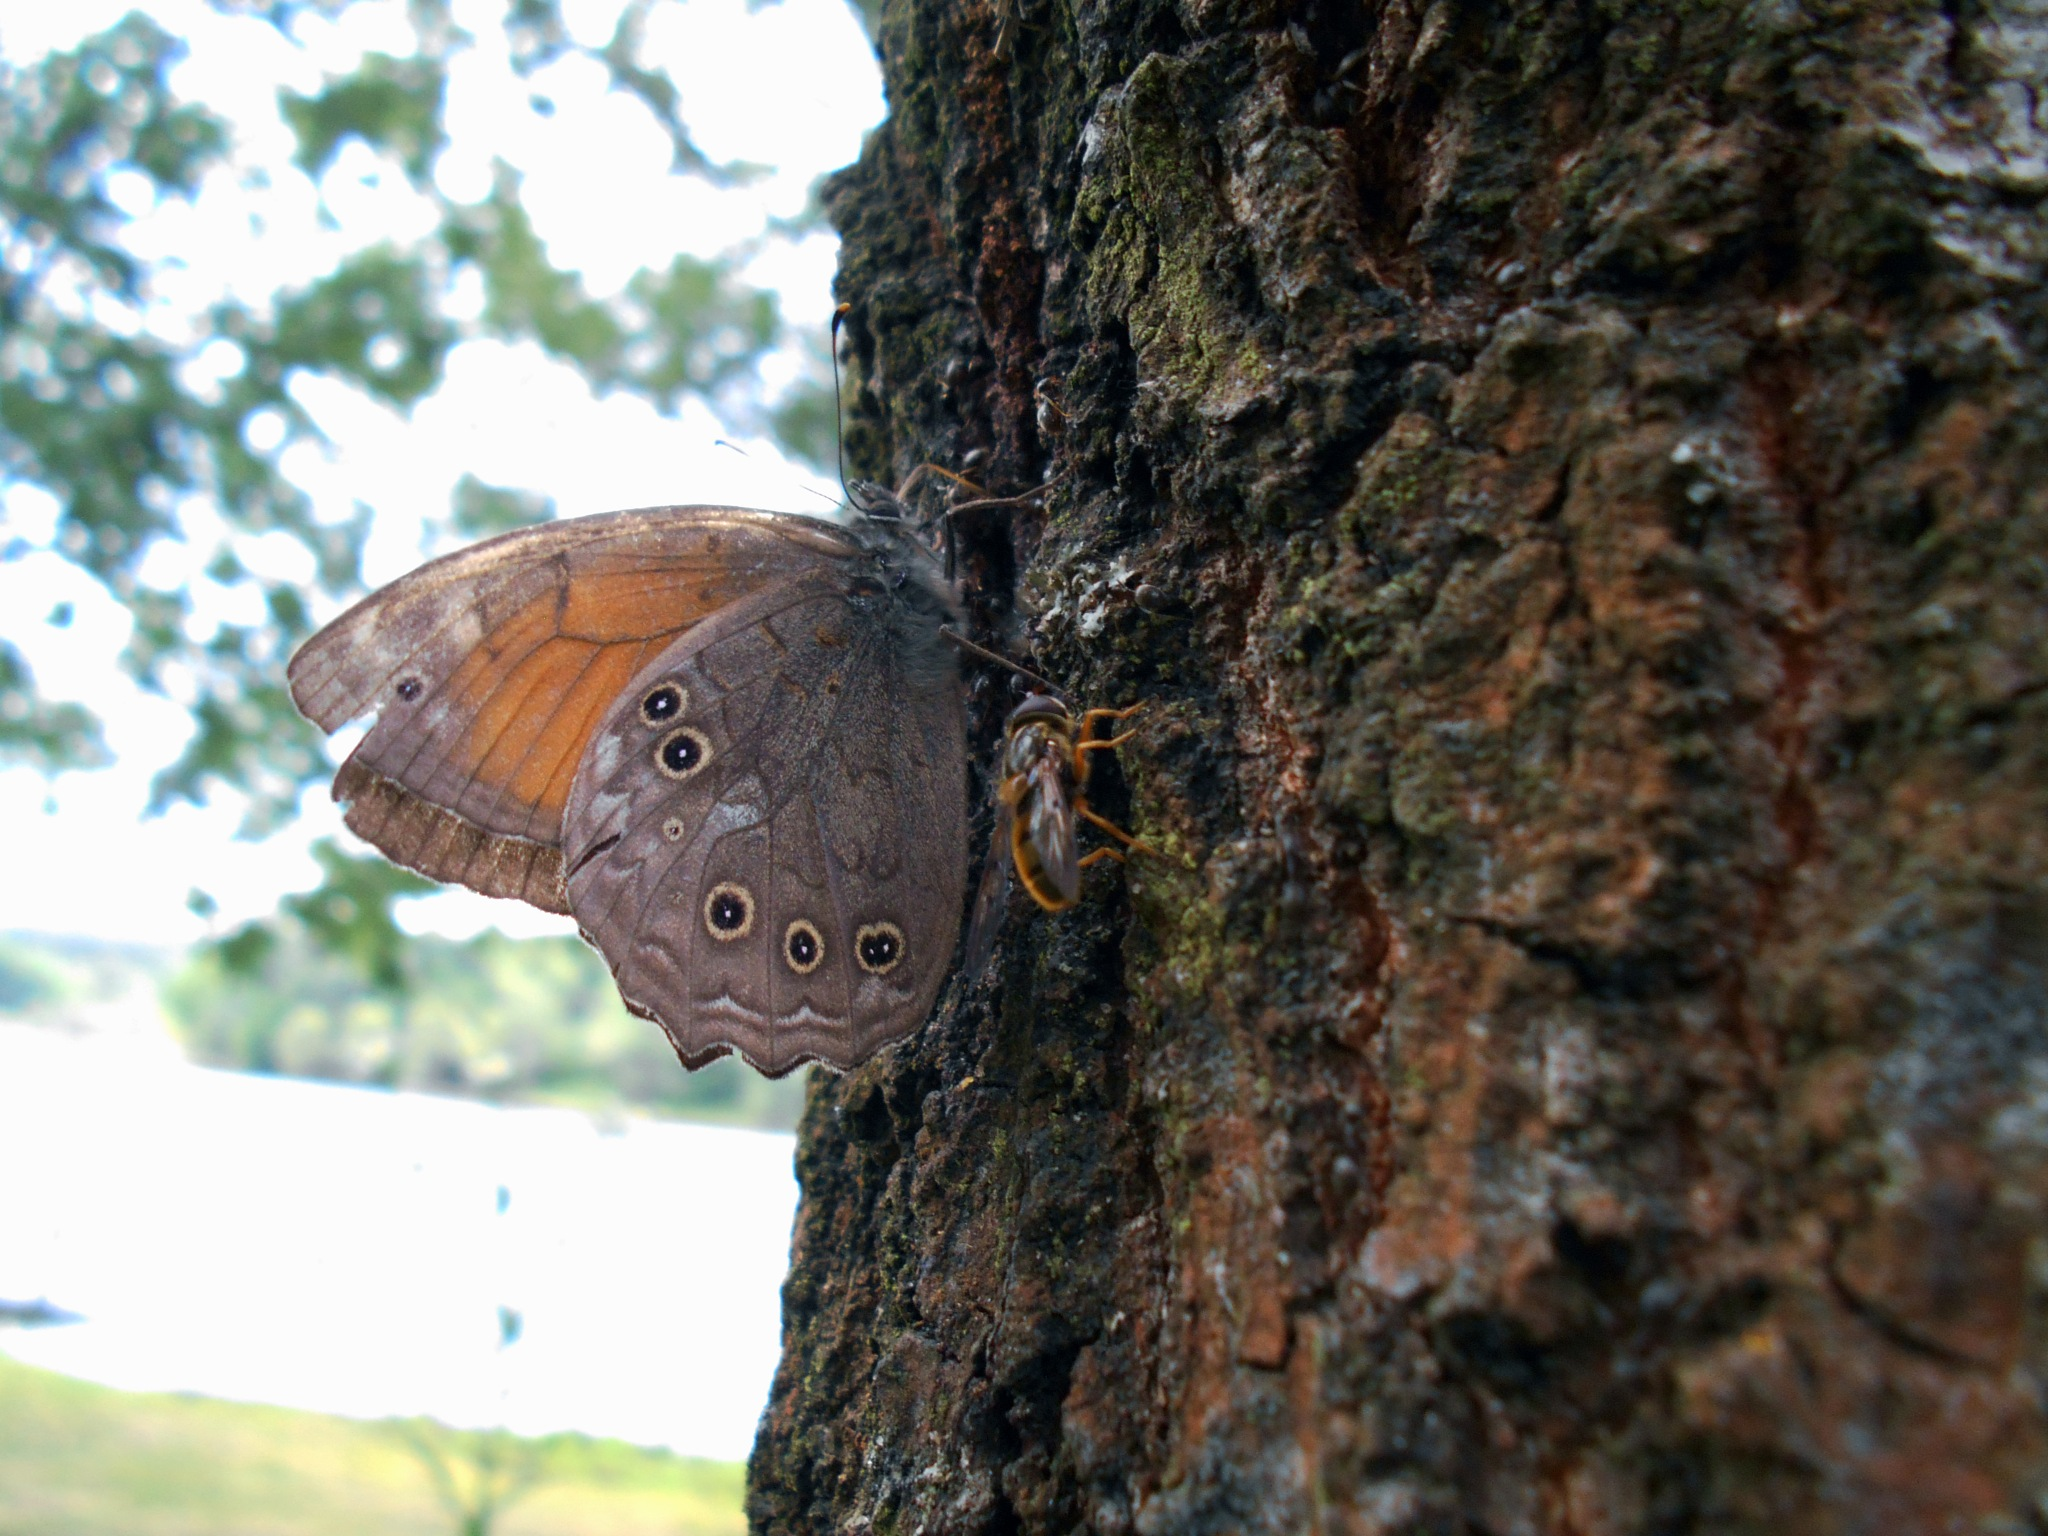 Butterflies and their friend by Paralangaj Andrea